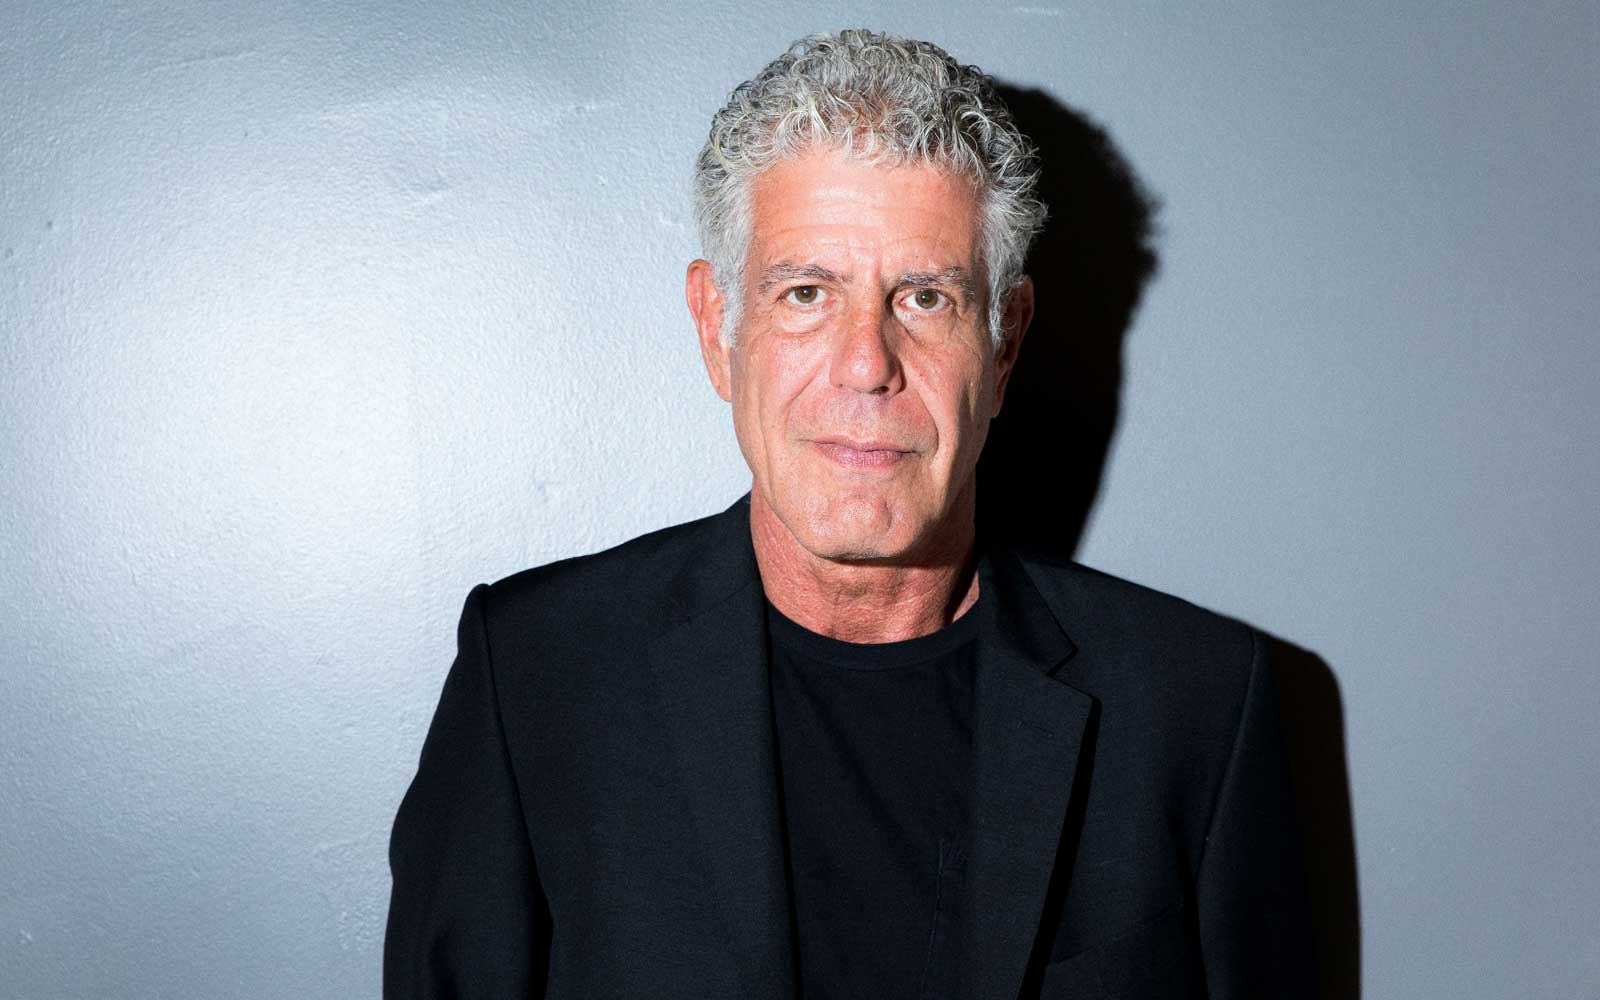 Celebrity Food Host Anthony Bourdain